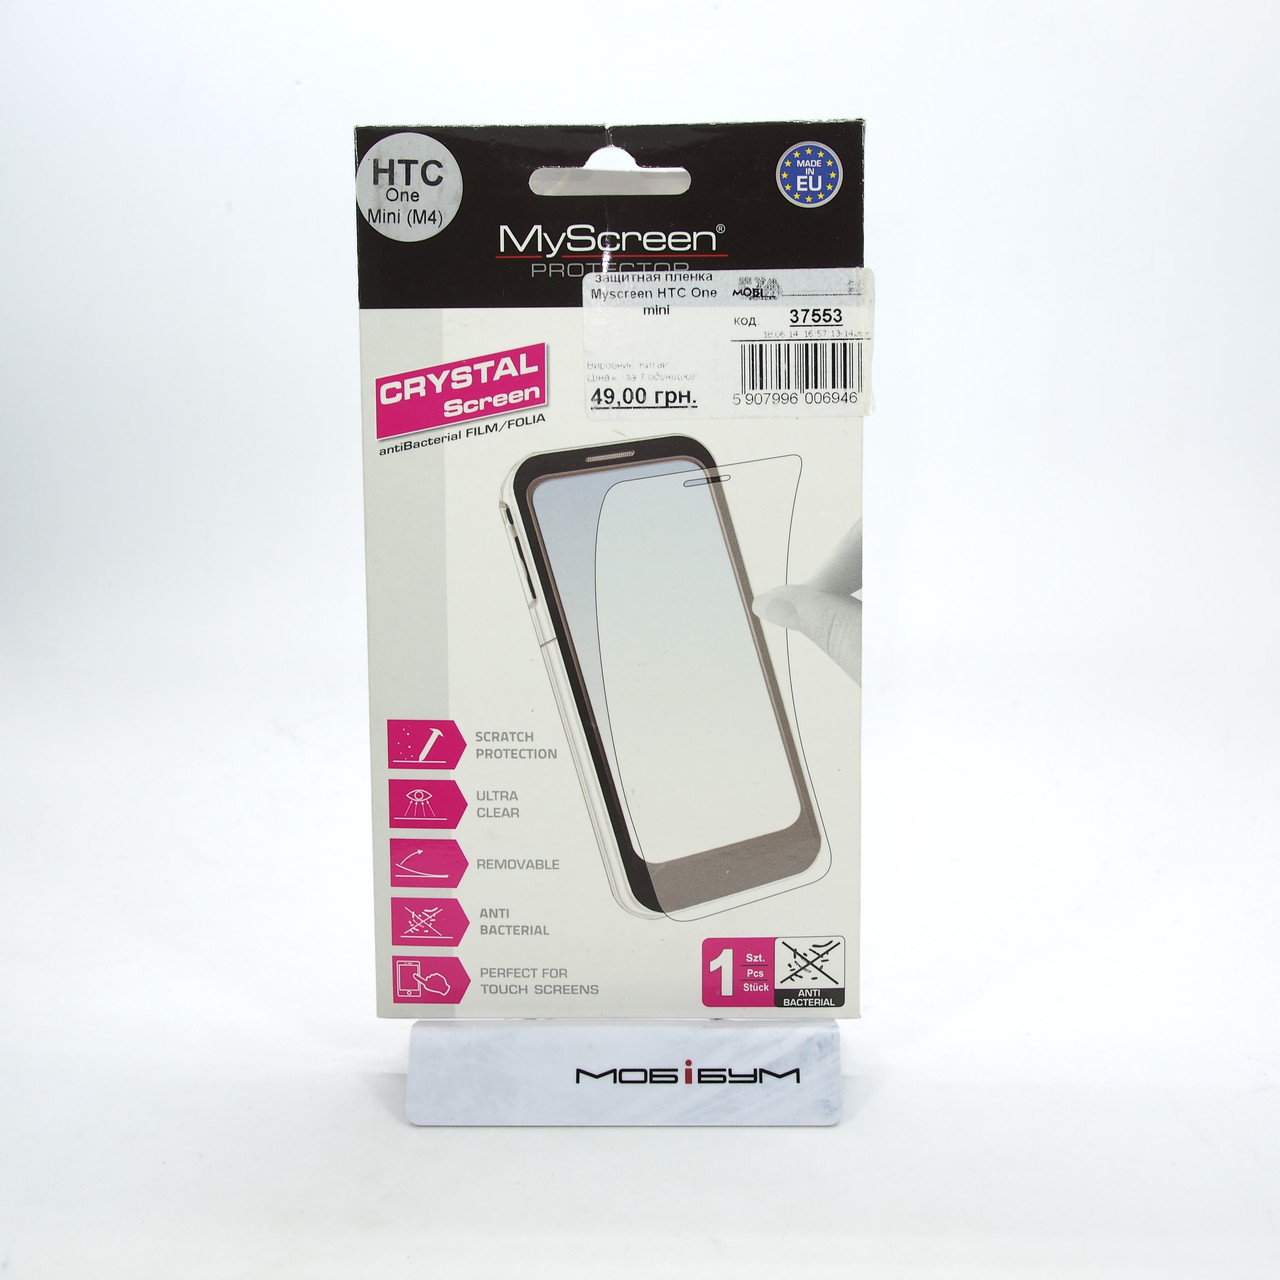 Защитная пленка MyScreen HTC One mini EAN/UPC: 5907996006946